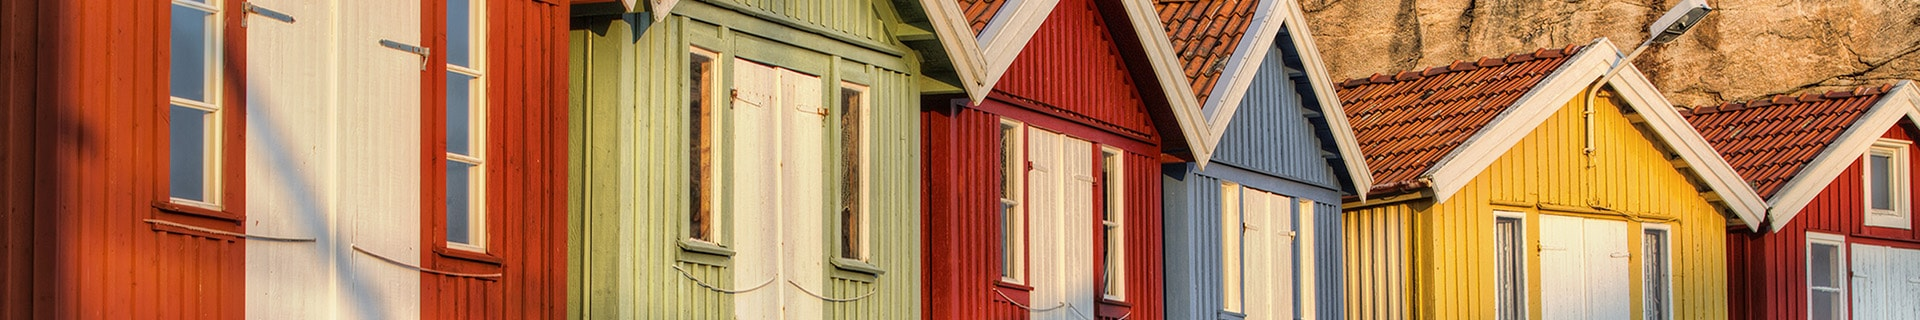 A row of identical houses with different color schemes